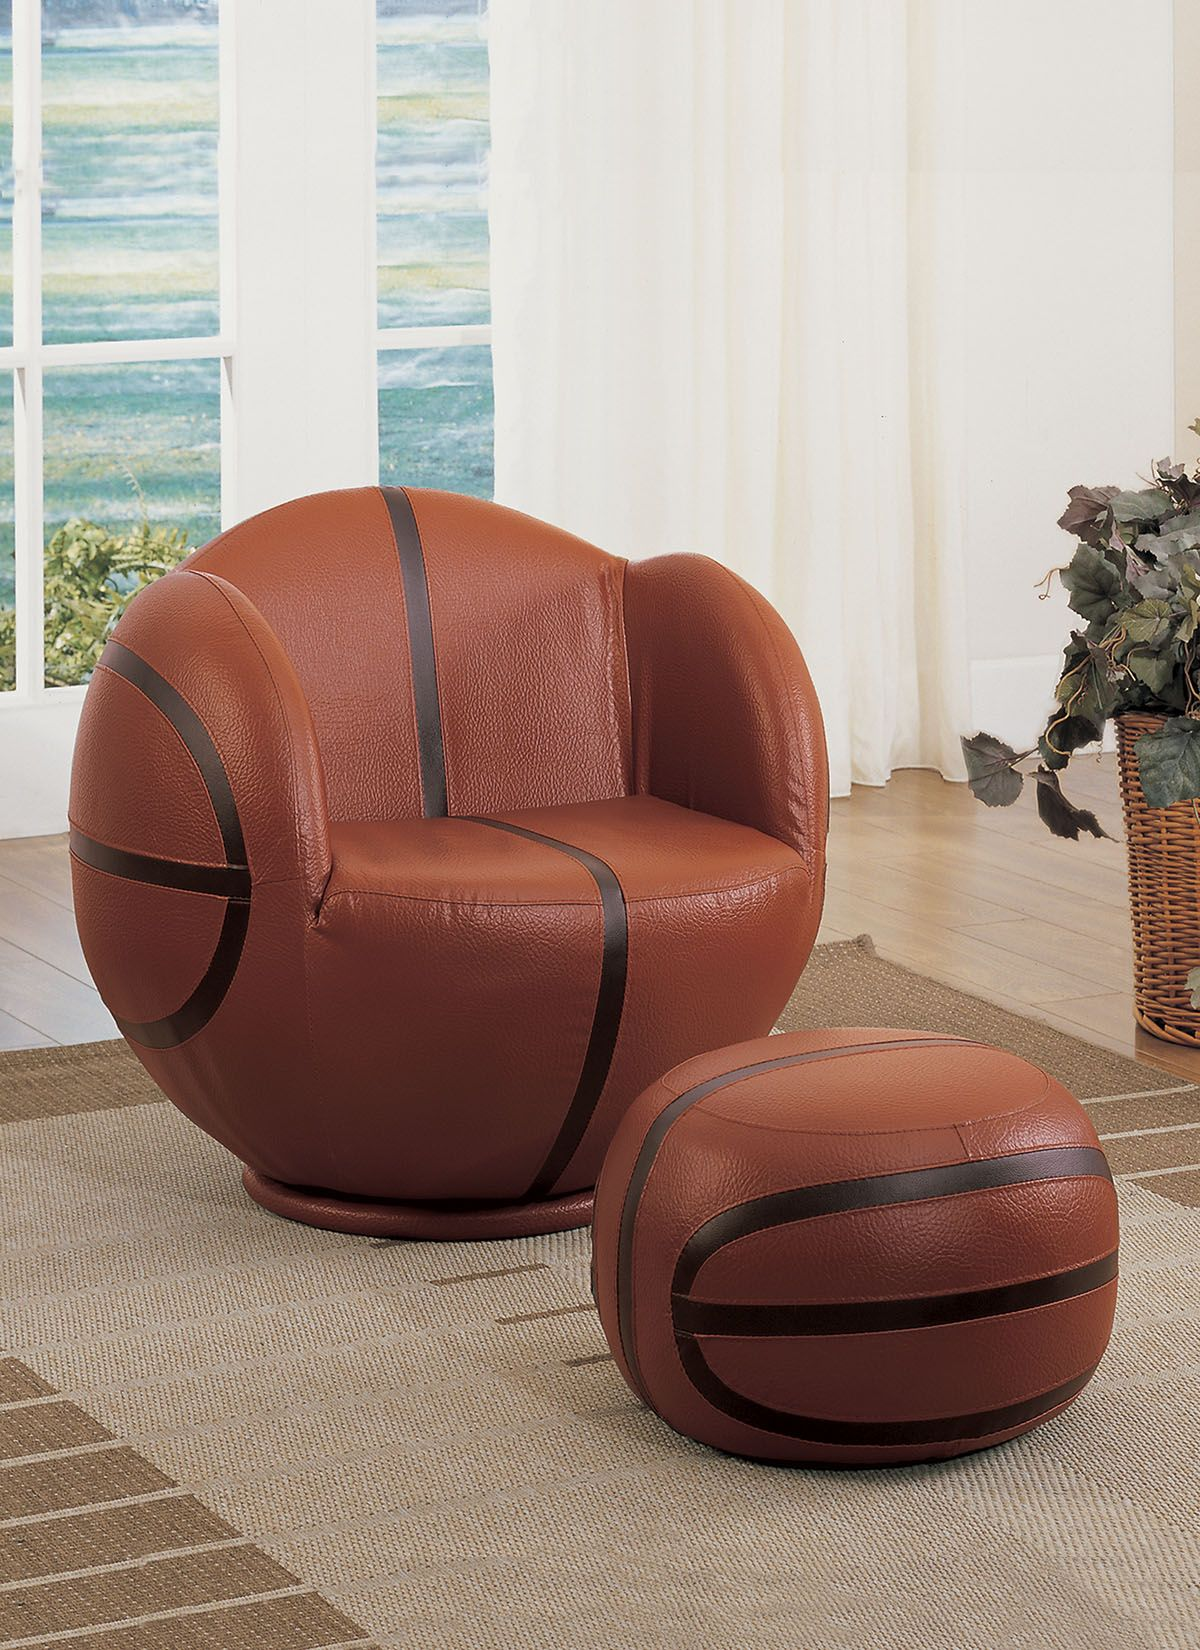 Home in 2020 Chair and ottoman, Chair and ottoman set, Chair